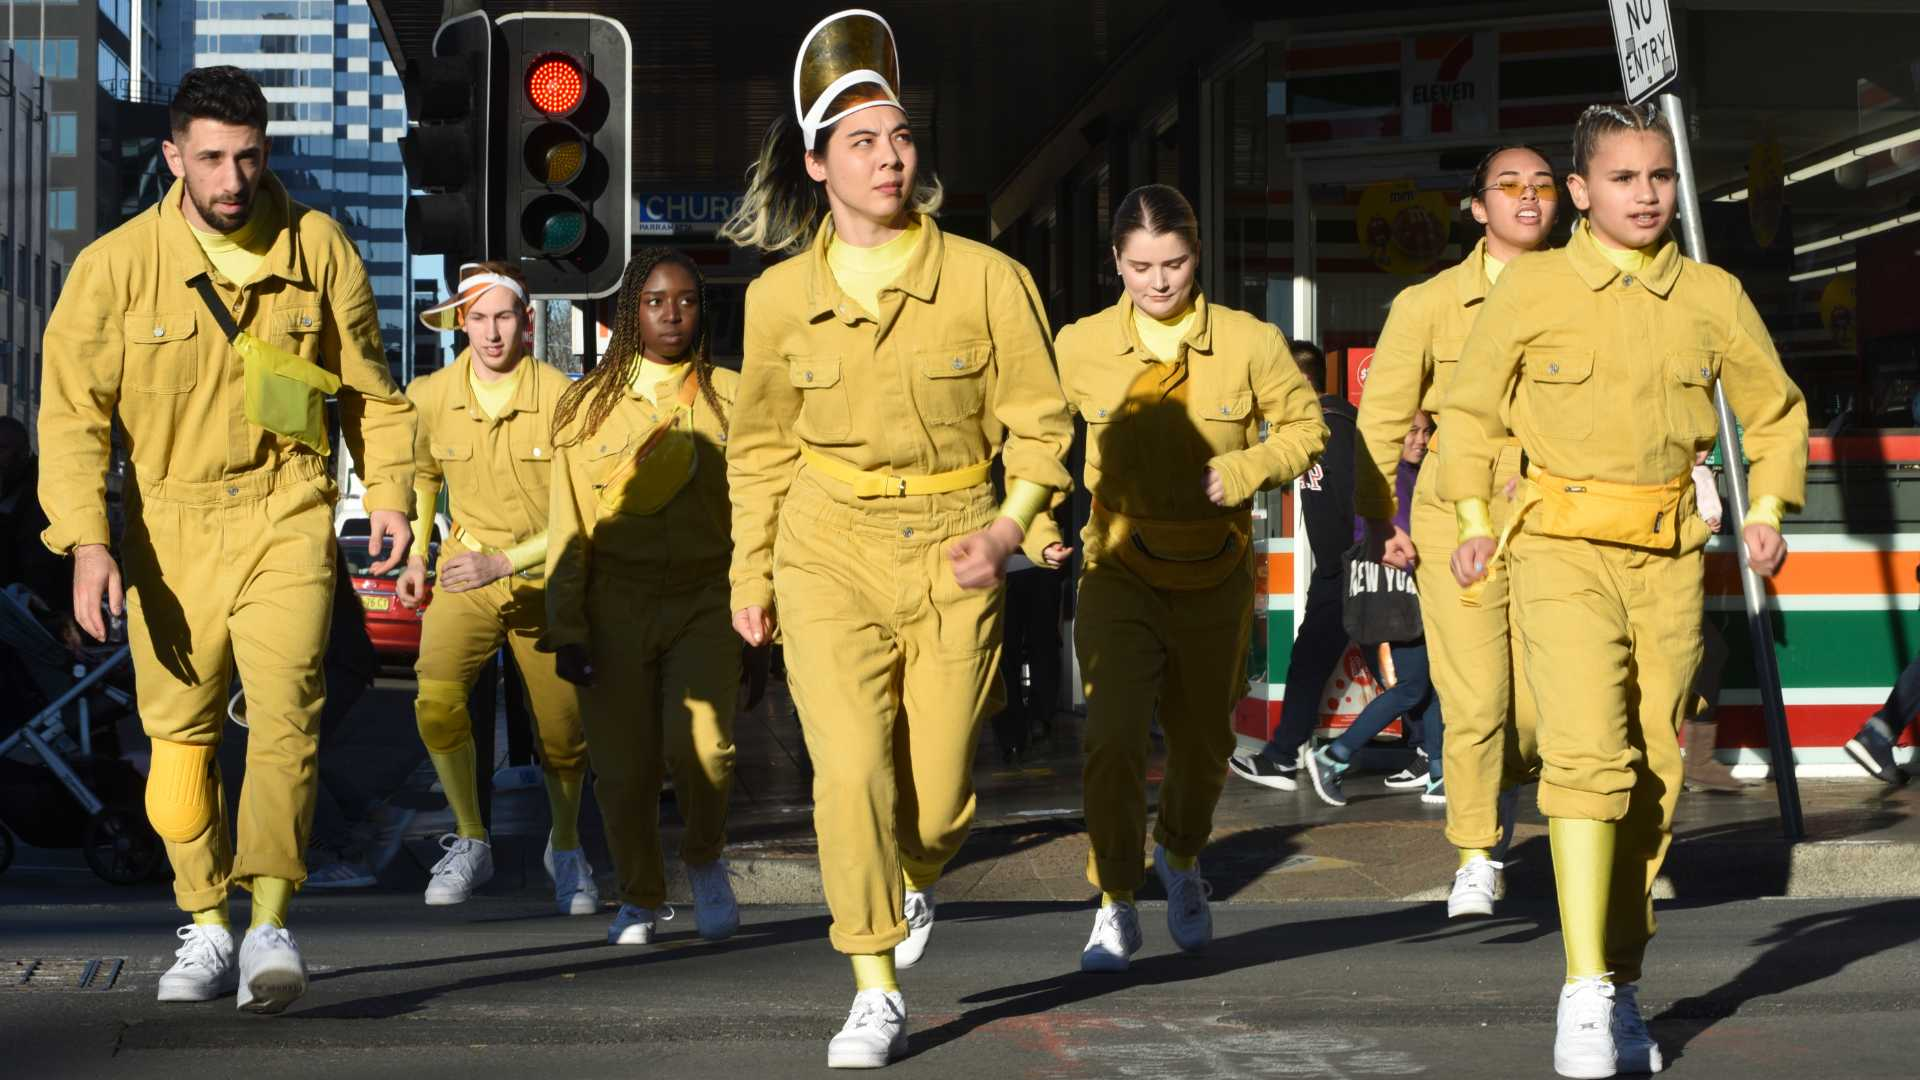 Performers wearing yellow jumpsuits walking in the street